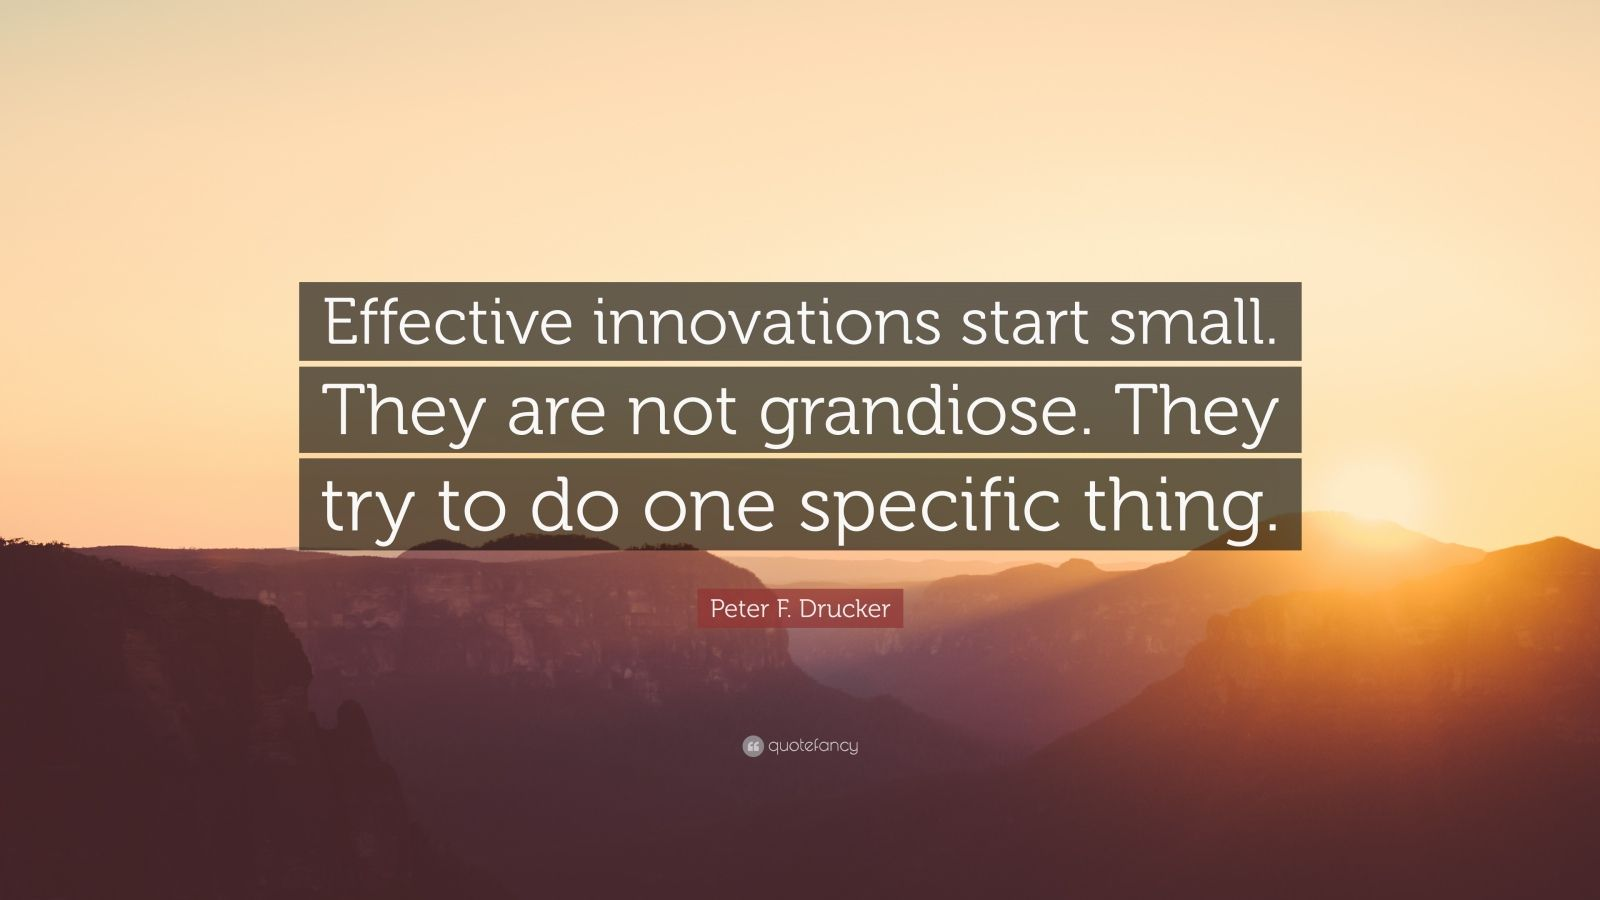 """Peter F. Drucker Quote: """"Effective innovations start small. They are not grandiose. They try to do one specific thing."""""""